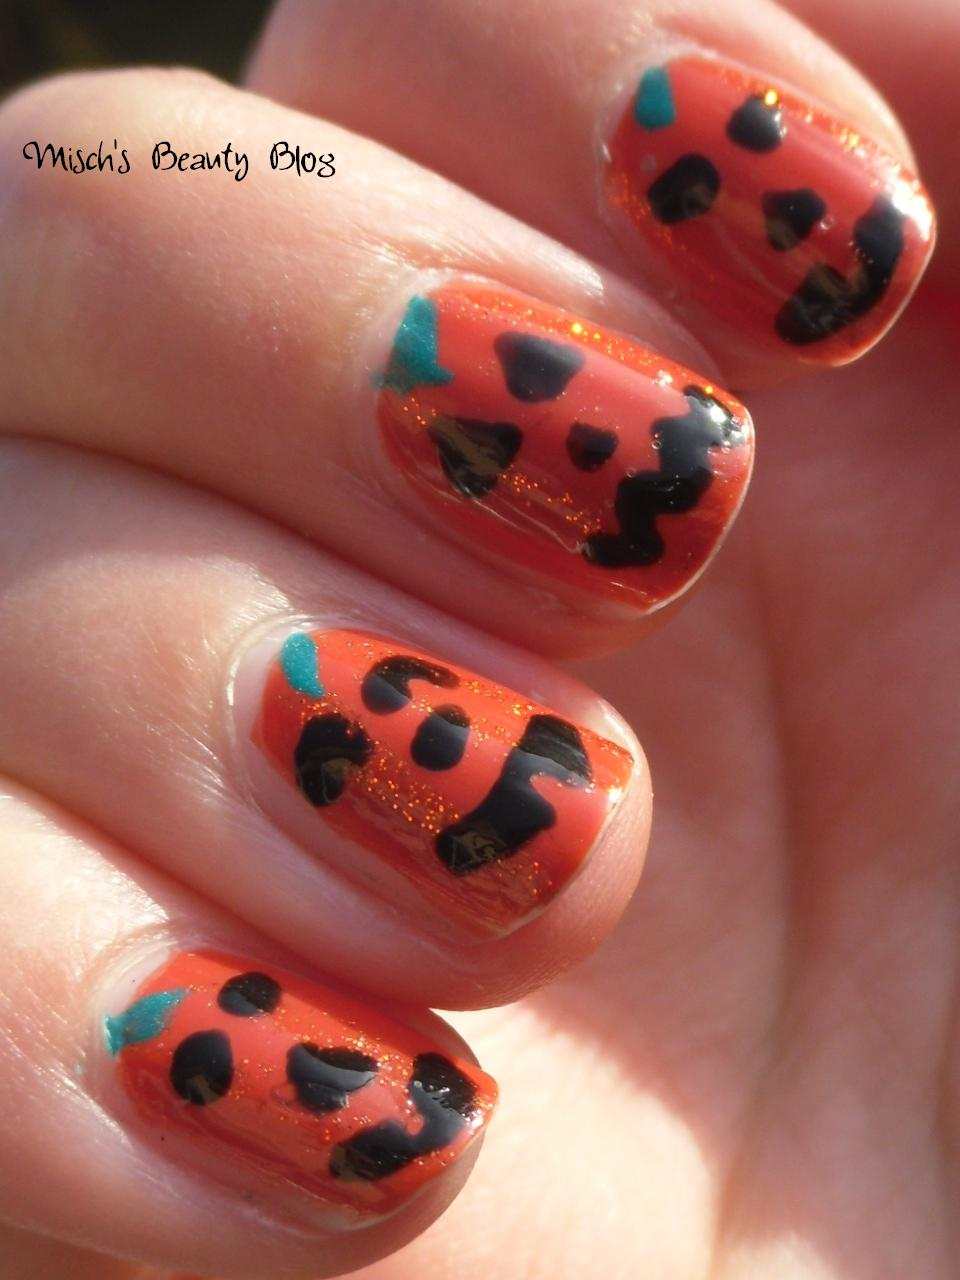 Misch\'s Beauty Blog: NOTD October 29th: Jack O\'Lantern Nail Art